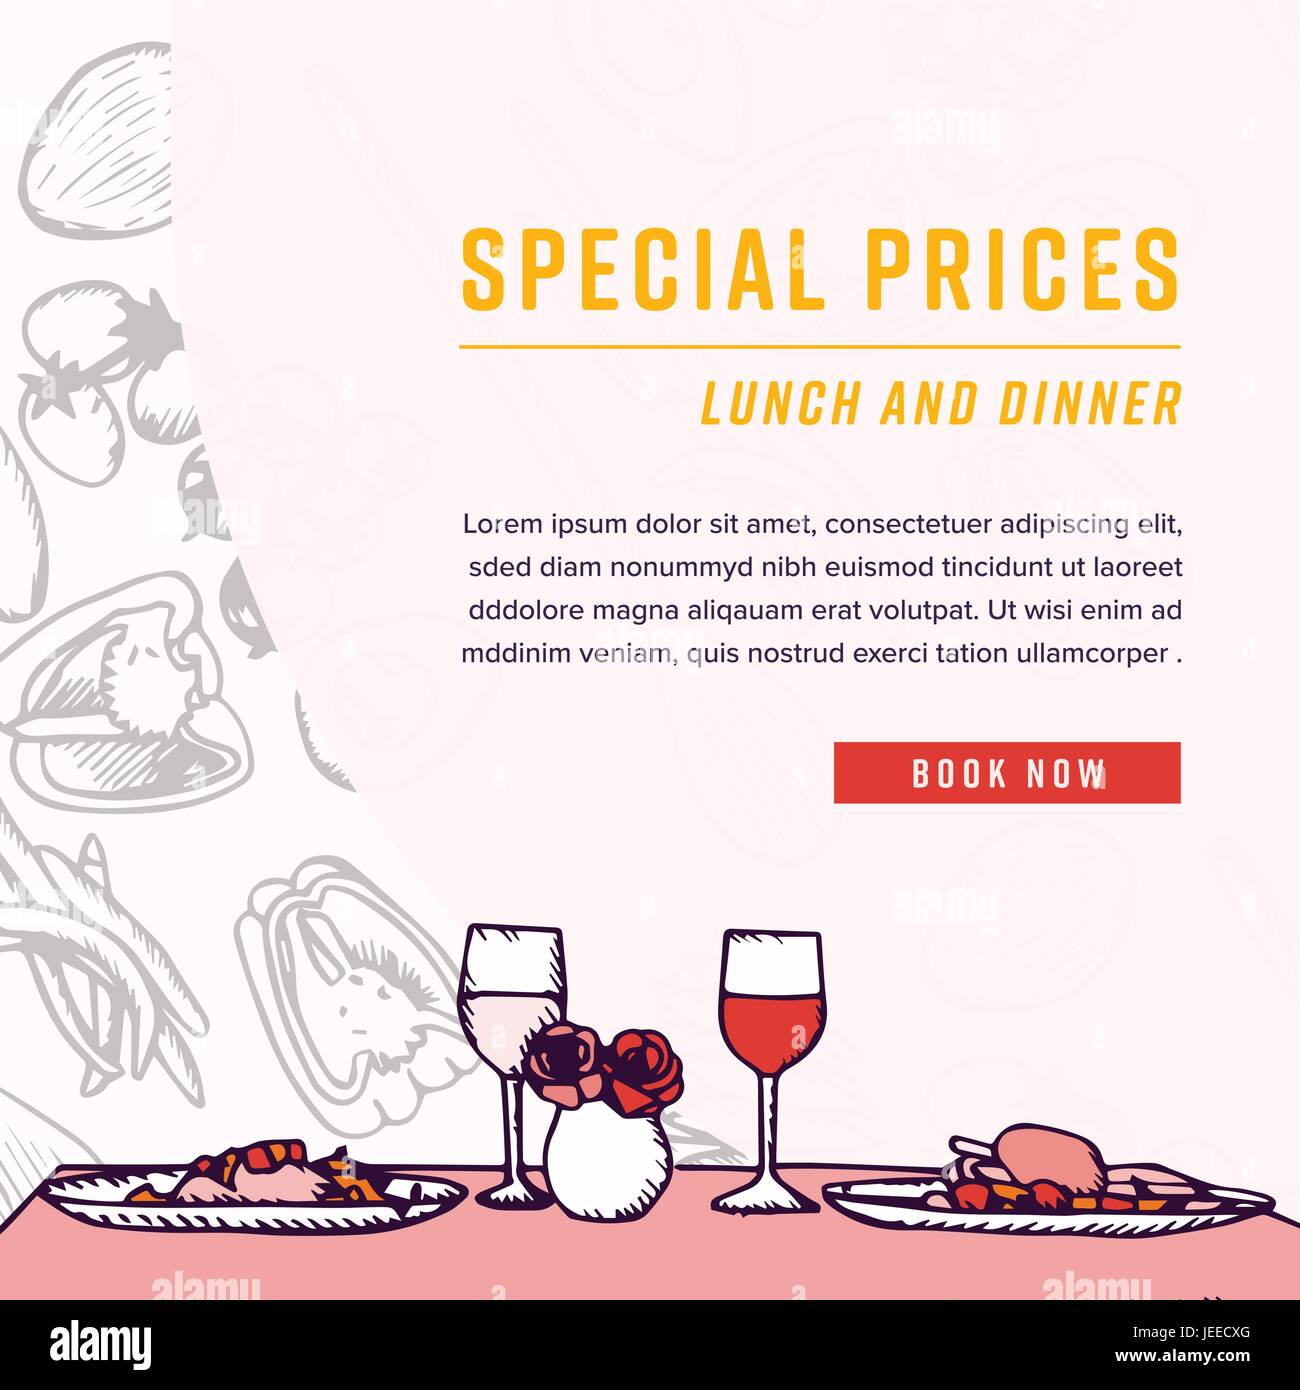 Greeting card with dinner table and special prices text stock vector greeting card with dinner table and special prices text m4hsunfo